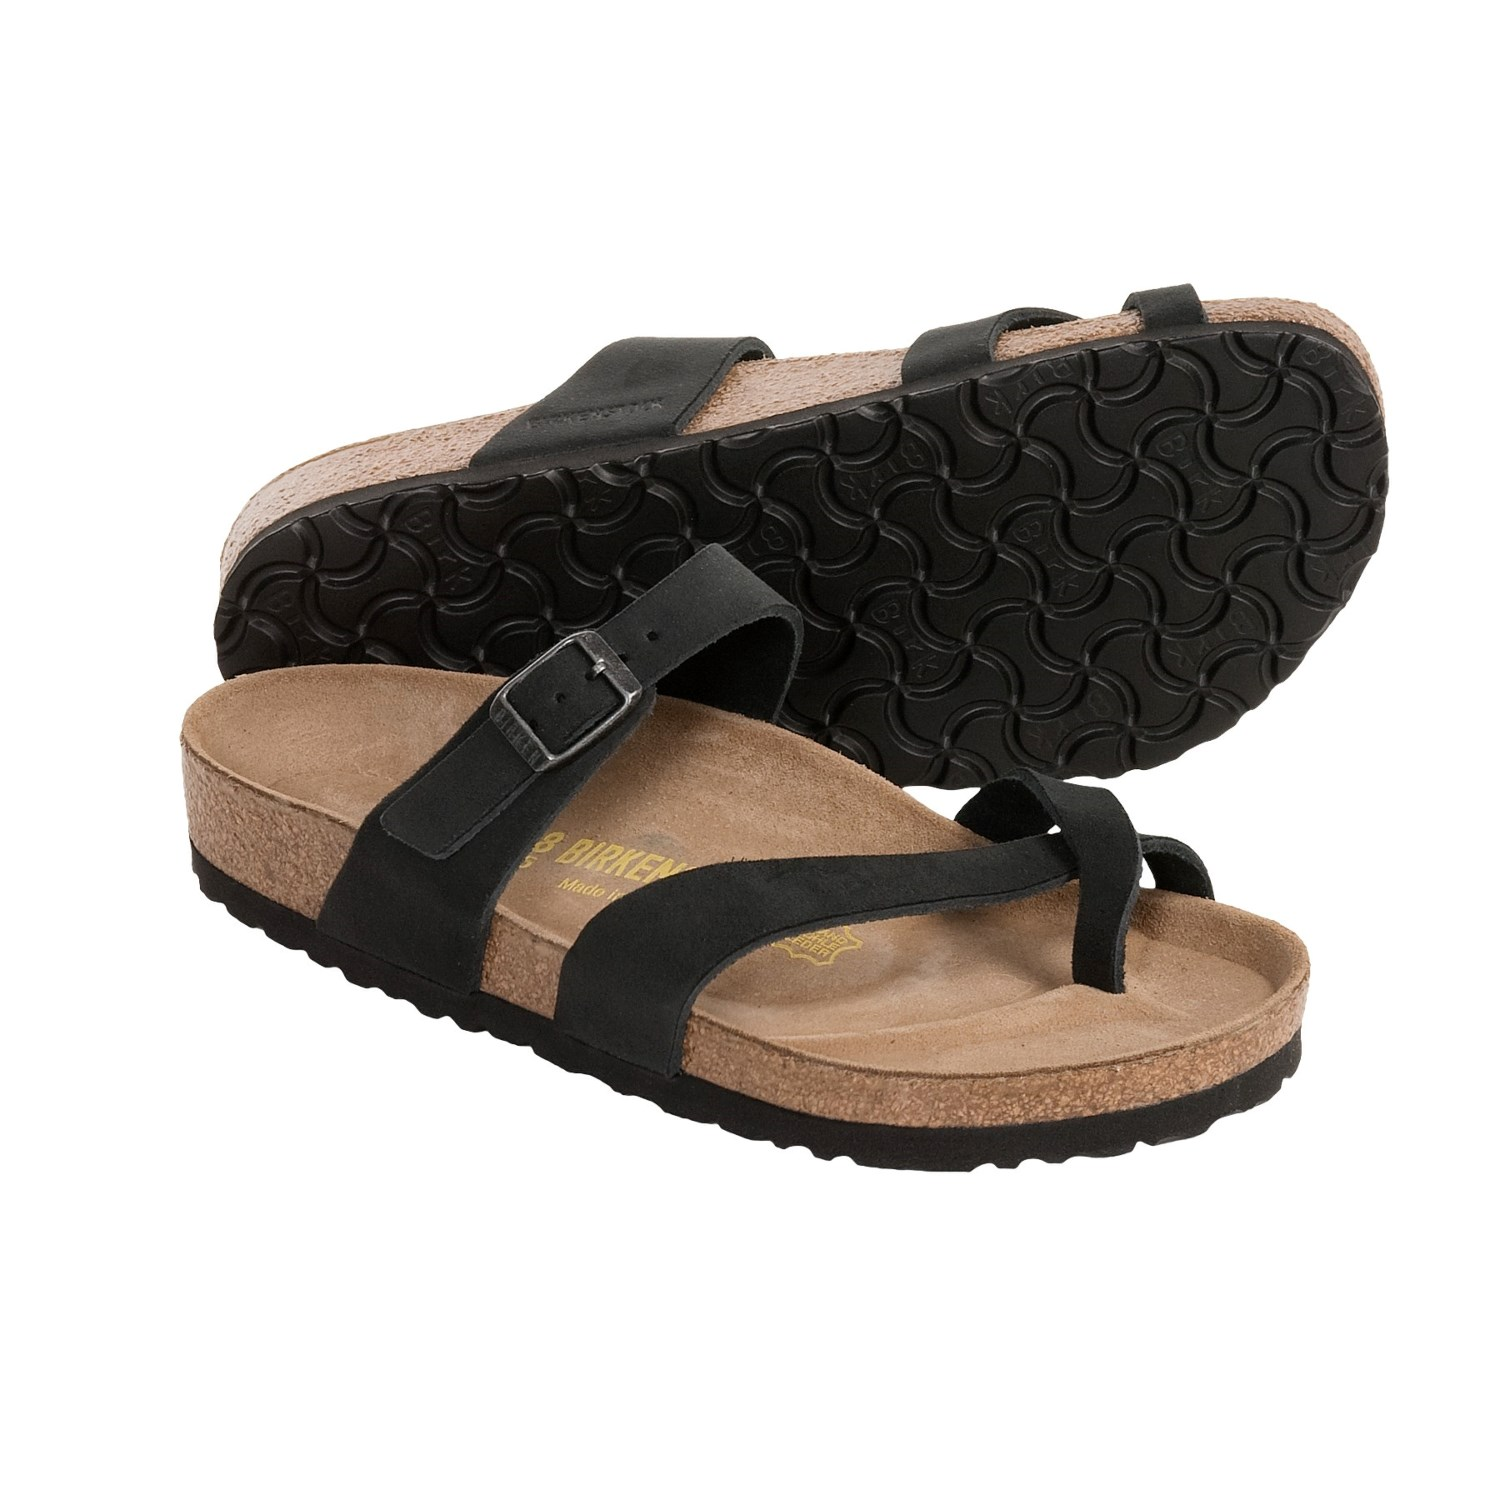 Elegant Birkenstock Sandals Florida From BirkoFlor In Black With A Regular Insole